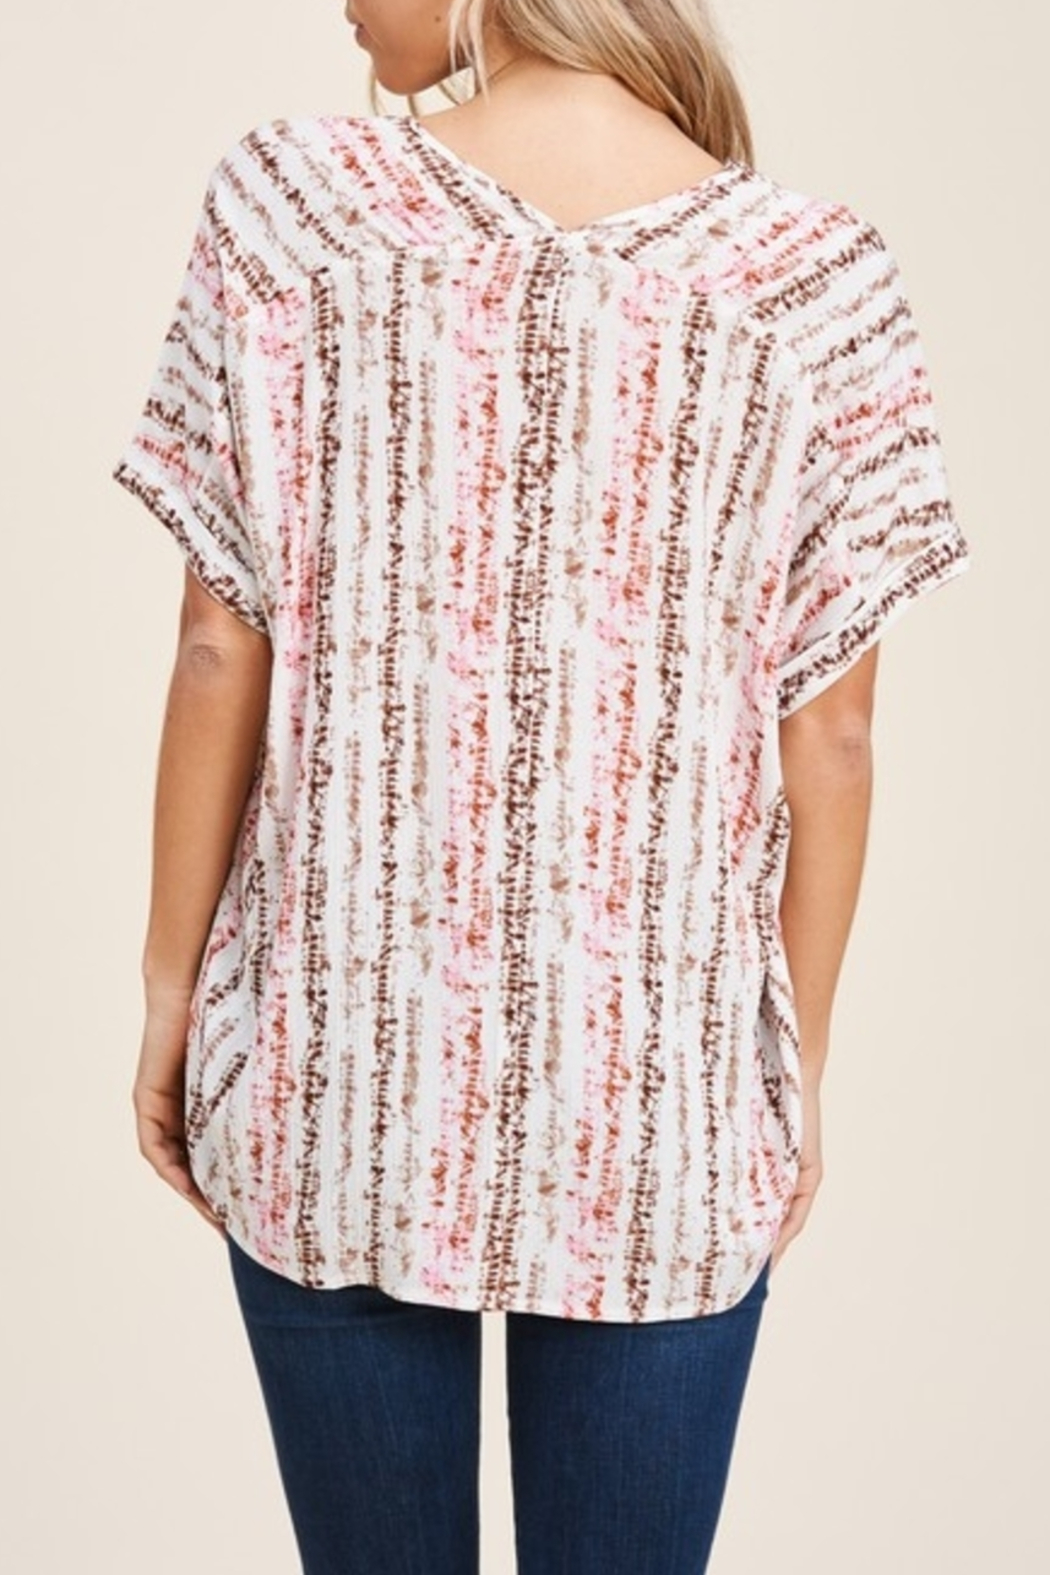 Staccato Everyday Delights Top - Front Full Image